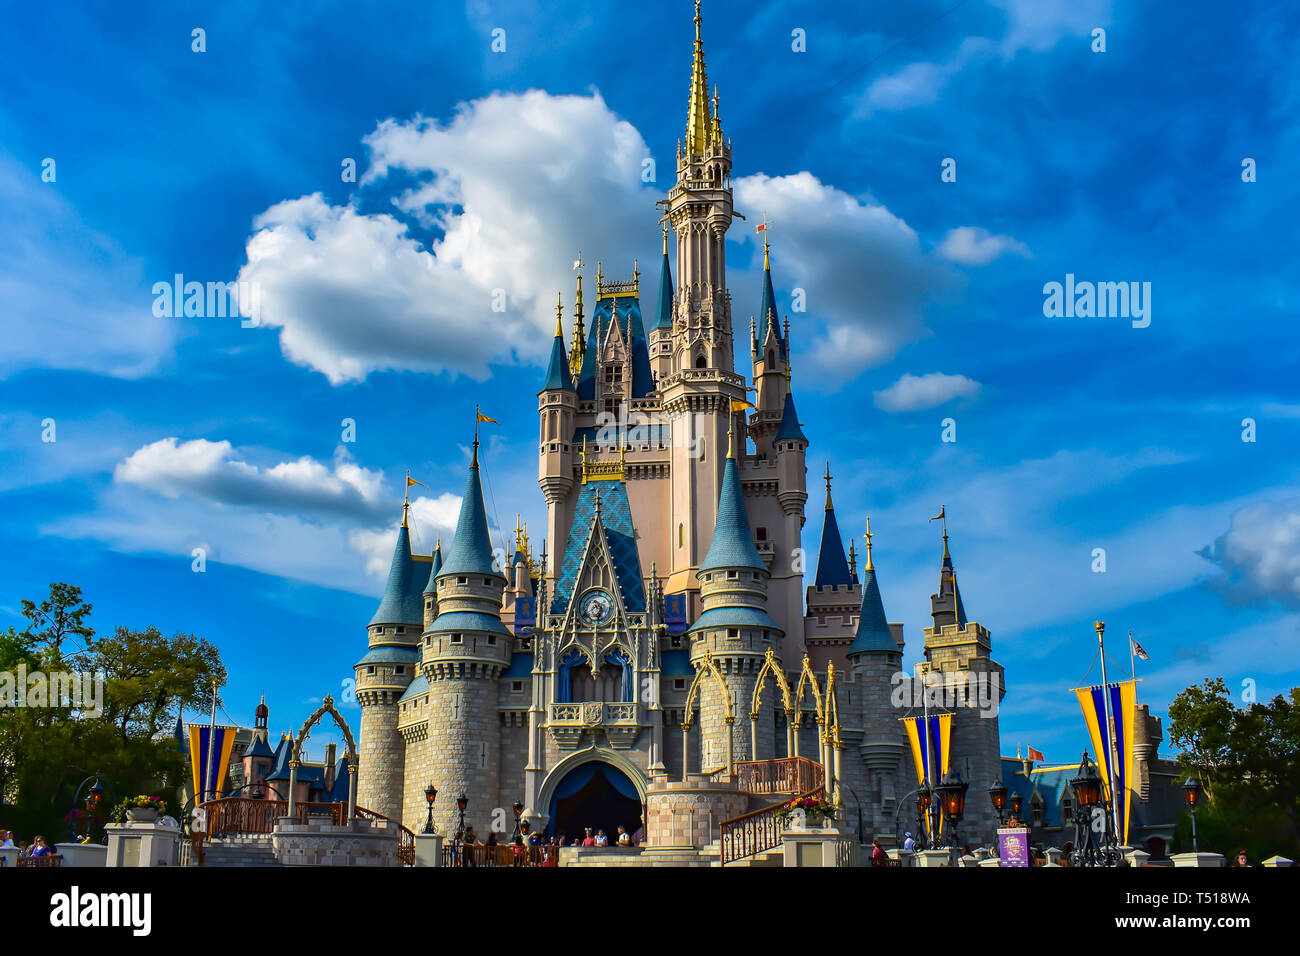 Orlando, Florida  March 19, 2019  Panoramic view of Cinderella's